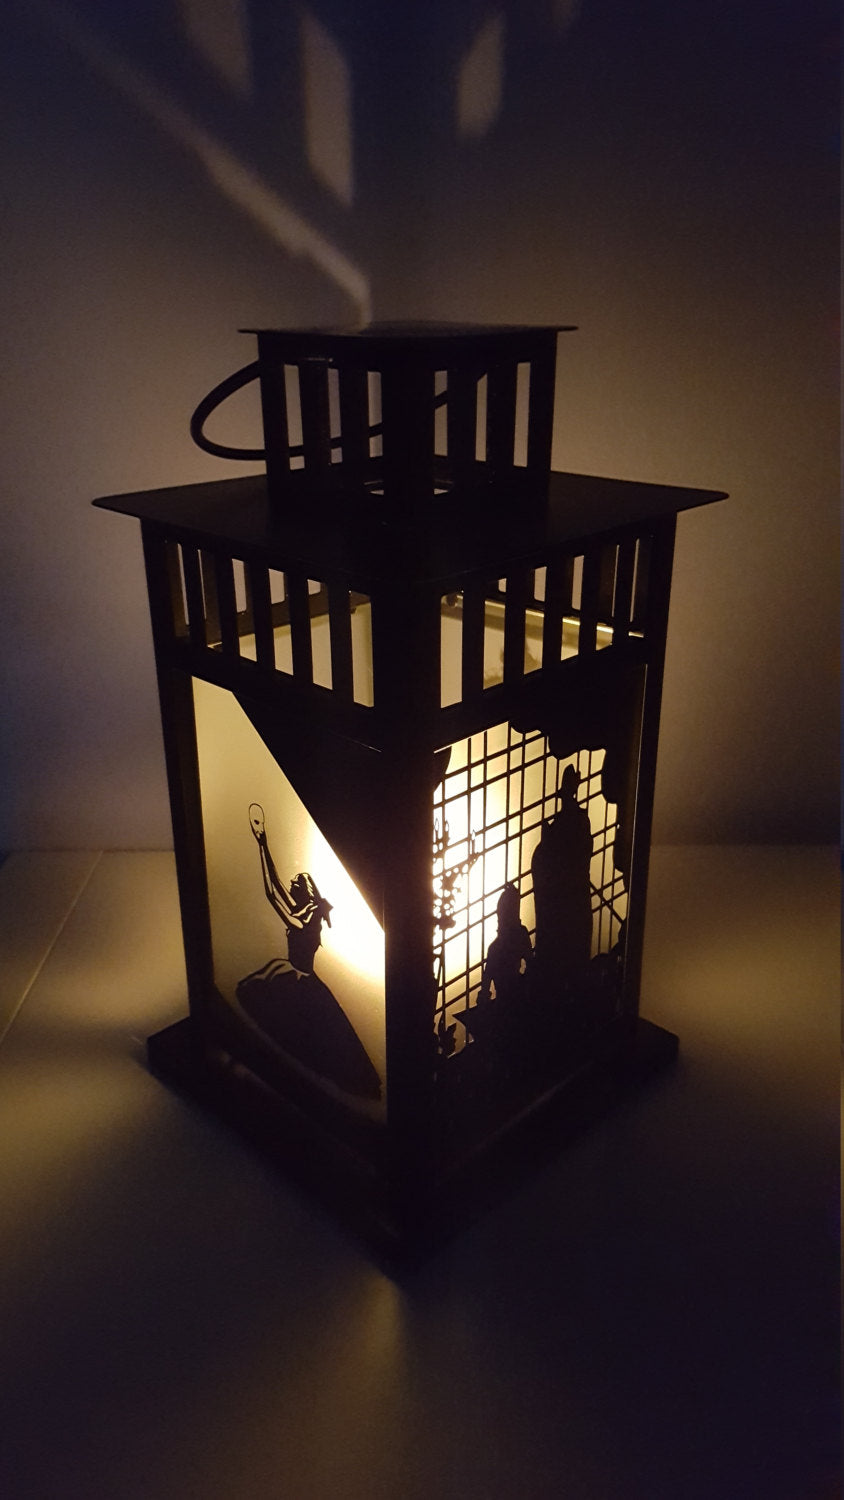 Phantom of the Opera Musical Inspired Decorative Lantern